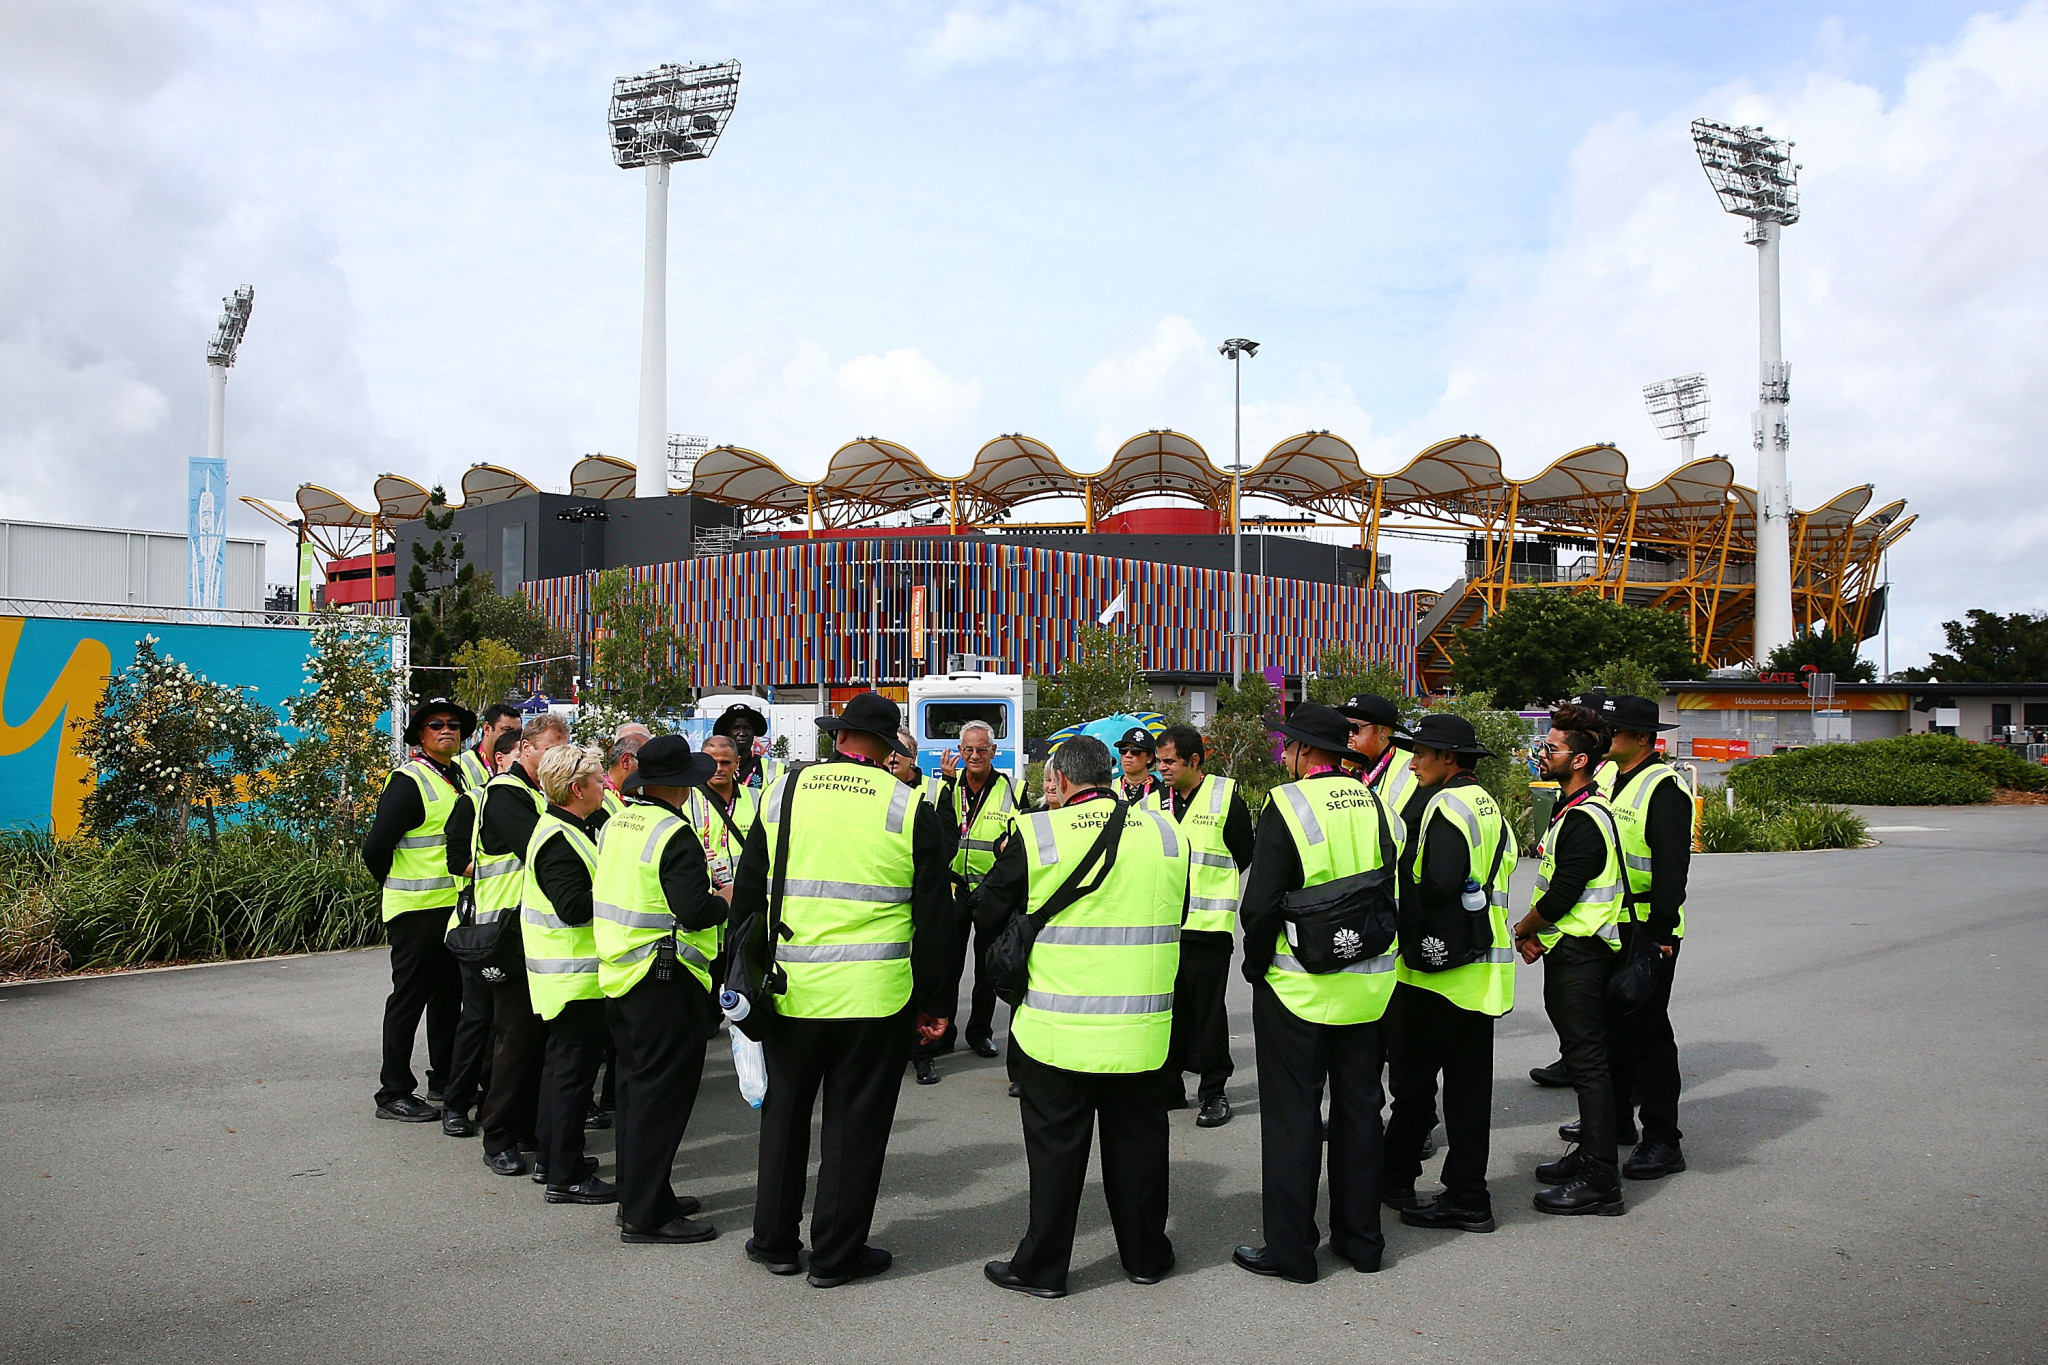 Gold Coast 2018 claim to be helping security staff still awaiting Commonwealth Games payments